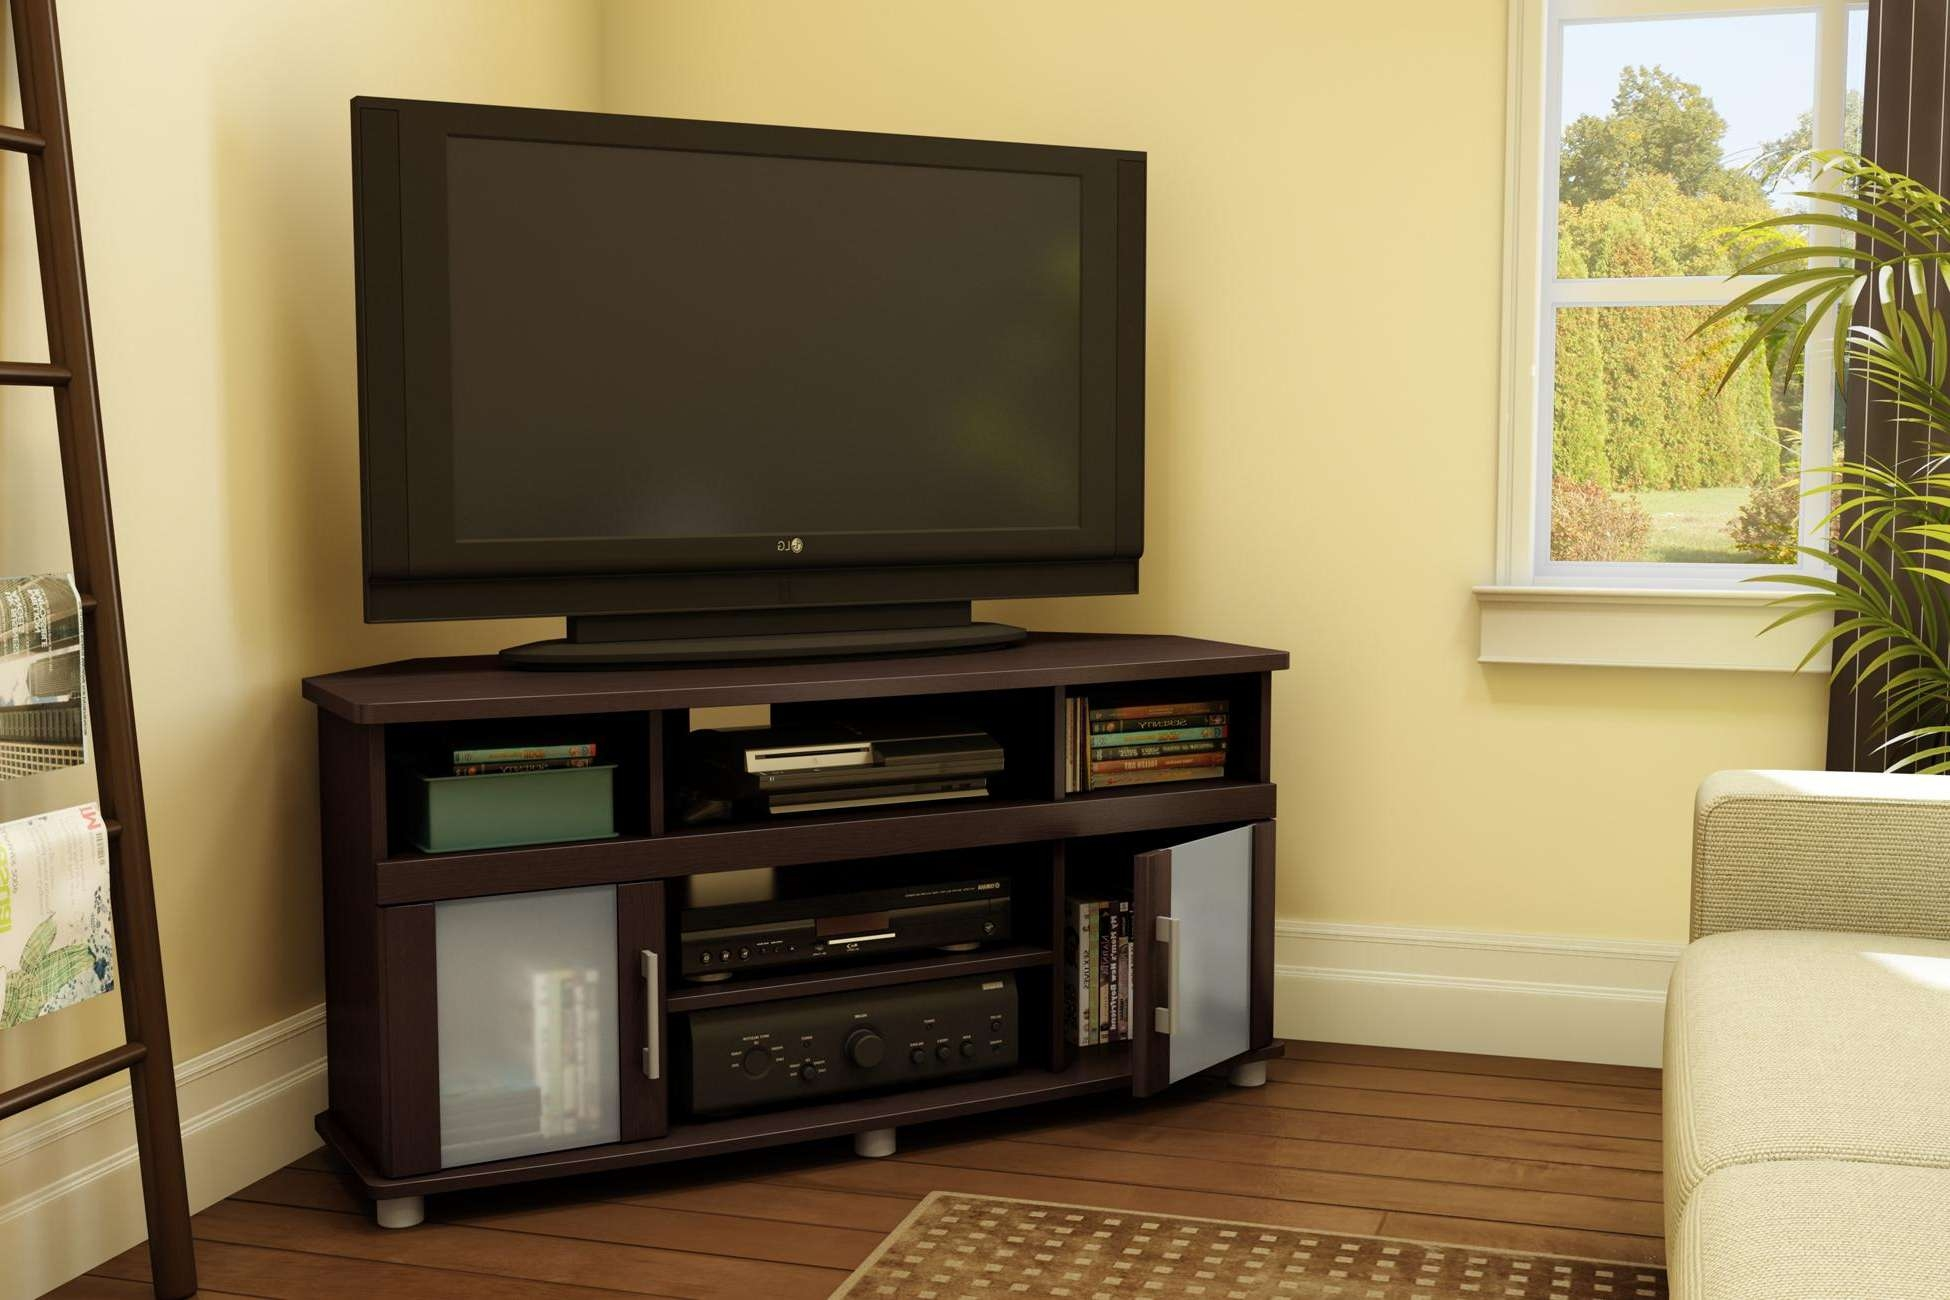 Corner Tv Stand Designs For Living Room – Nakicphotography Inside 50 Inch Corner Tv Cabinets (View 18 of 20)